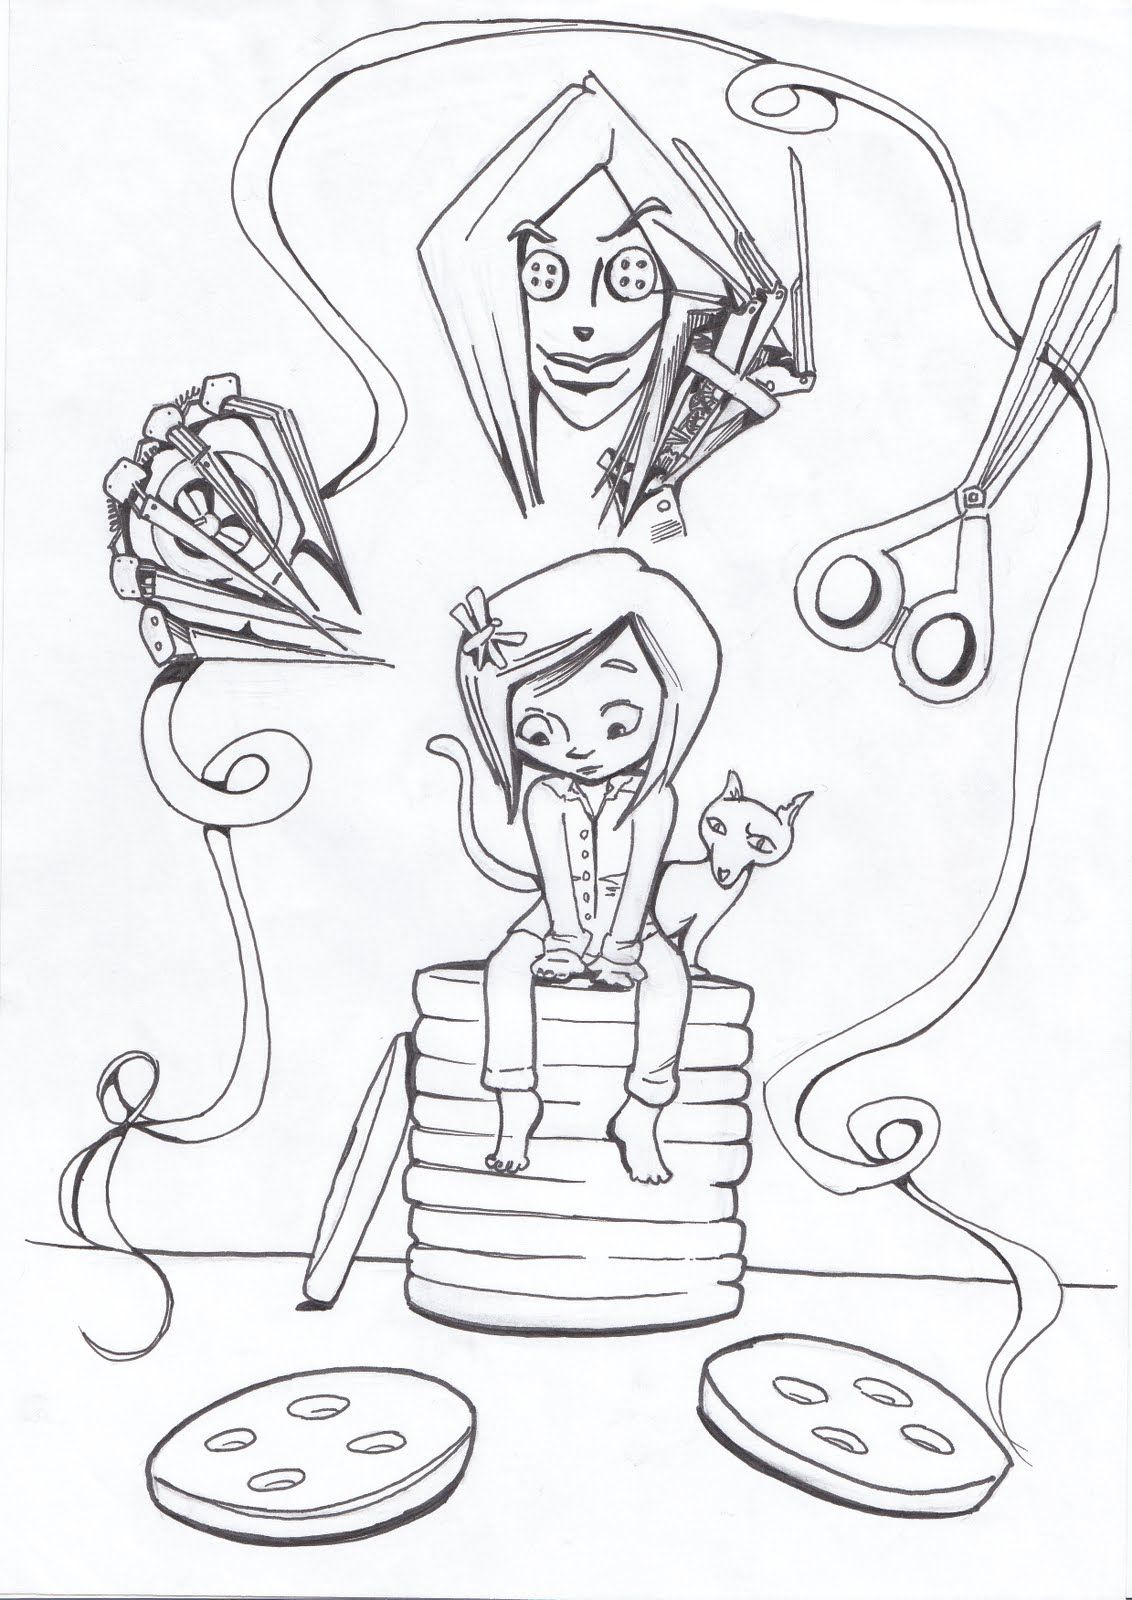 Colouring pages james and the giant peach - Coraline Coloring Pages Google Search